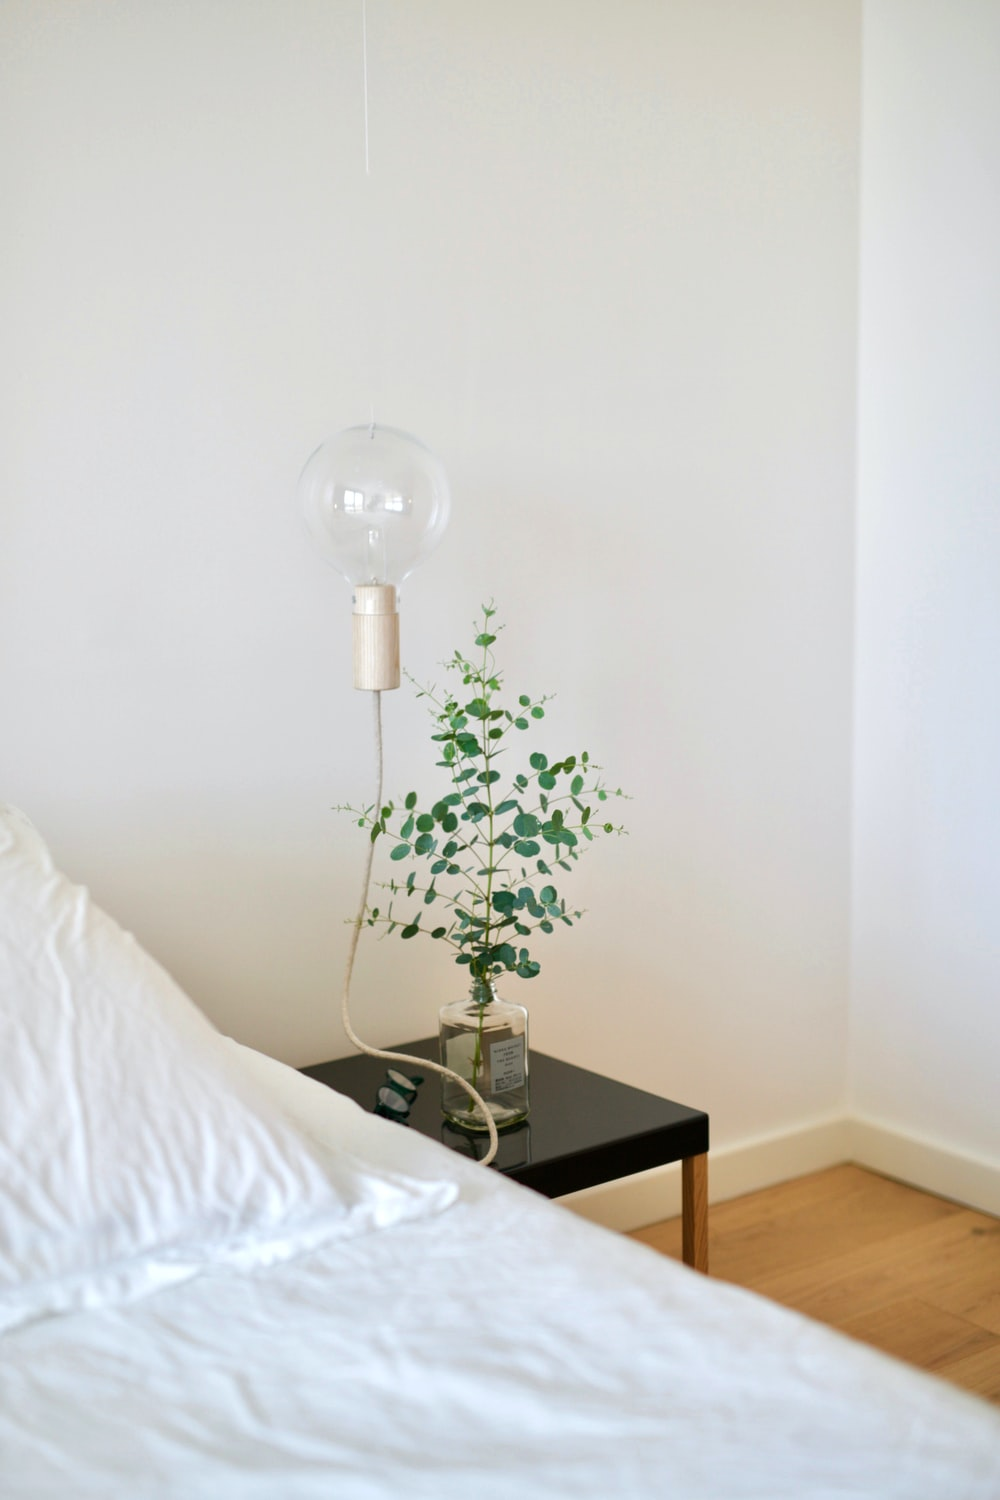 green plant beside table lamp in room